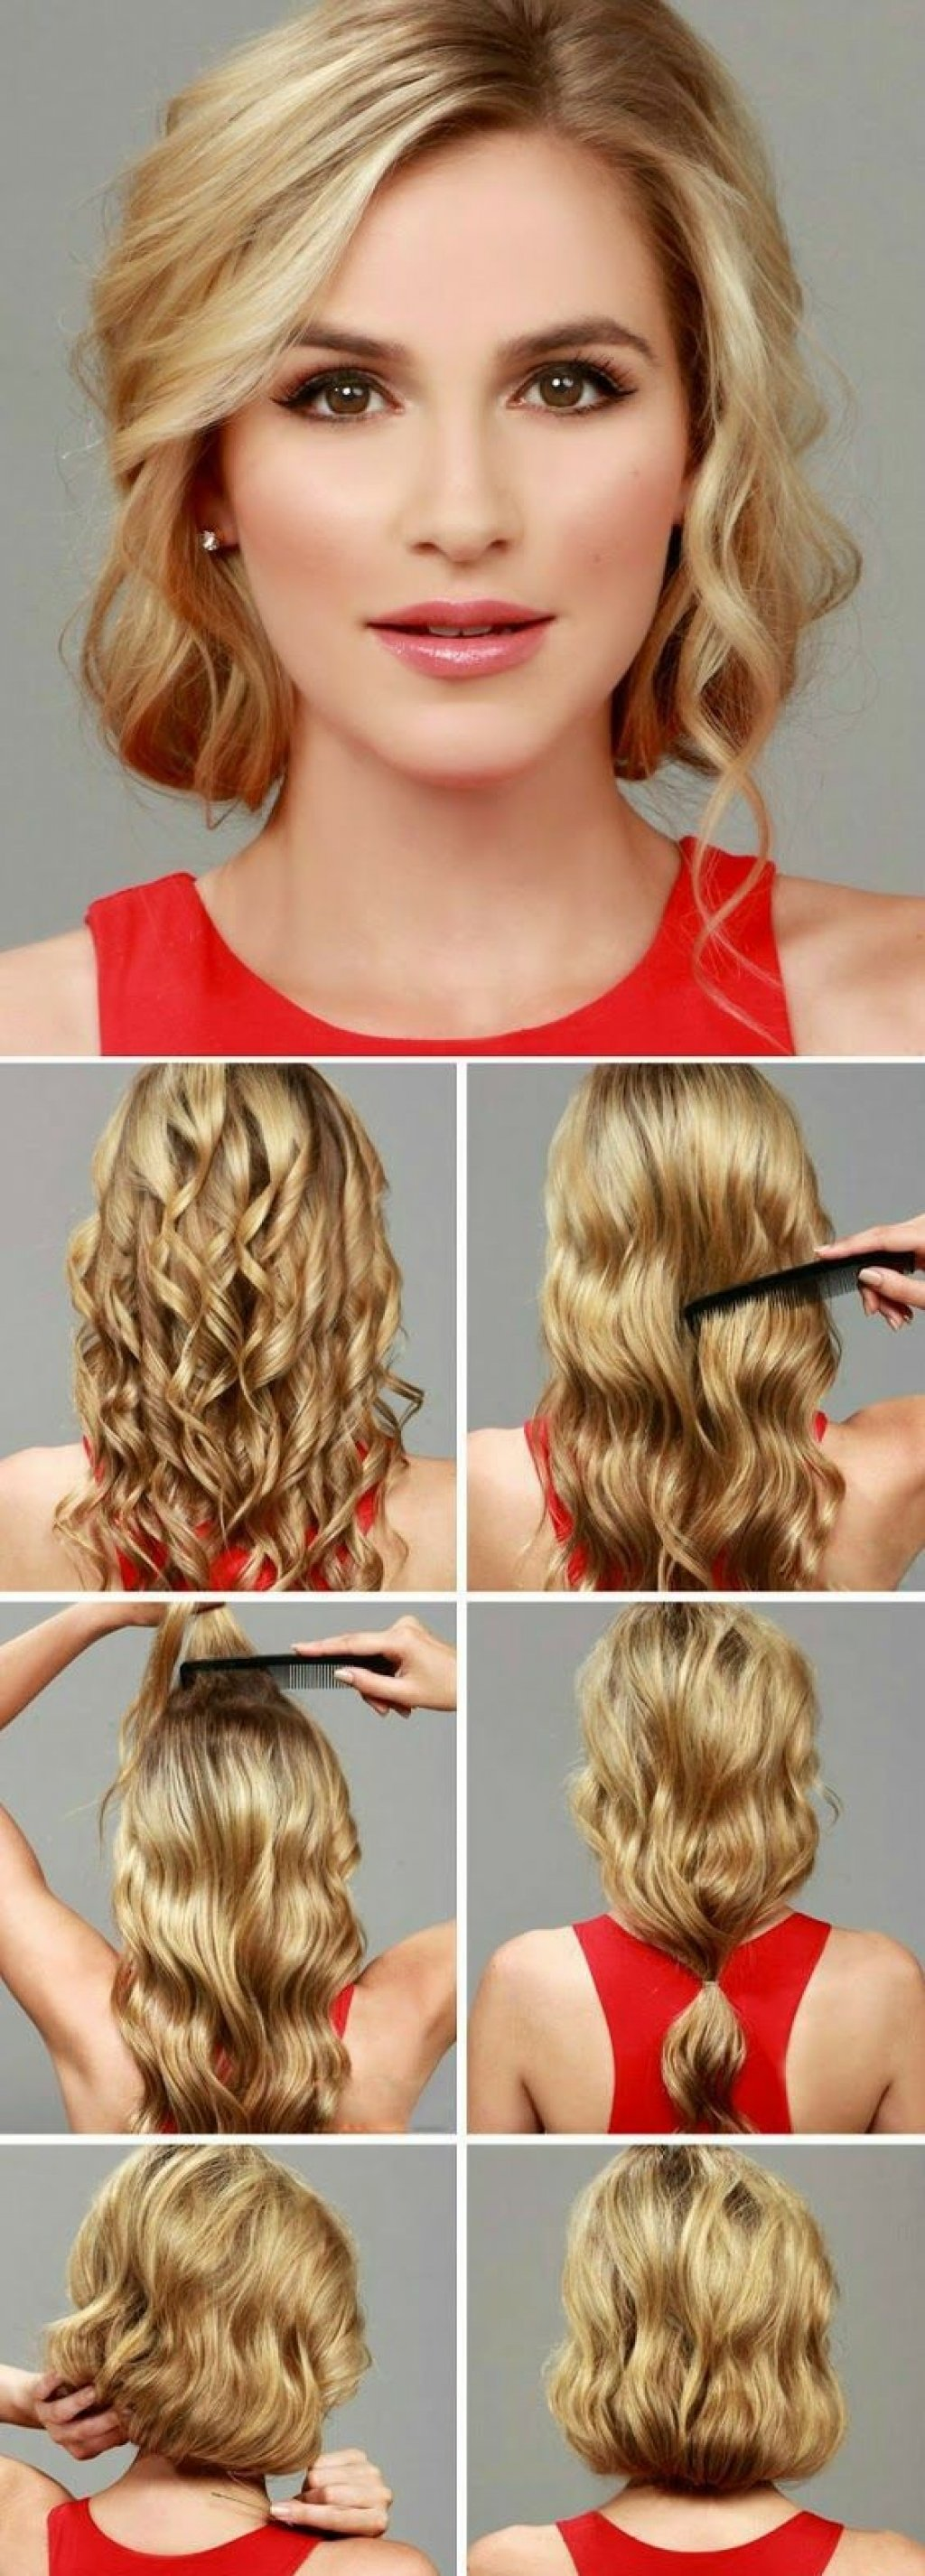 1920 Flapper Hairstyles Long Hair Hairstyle Of Nowdays Card